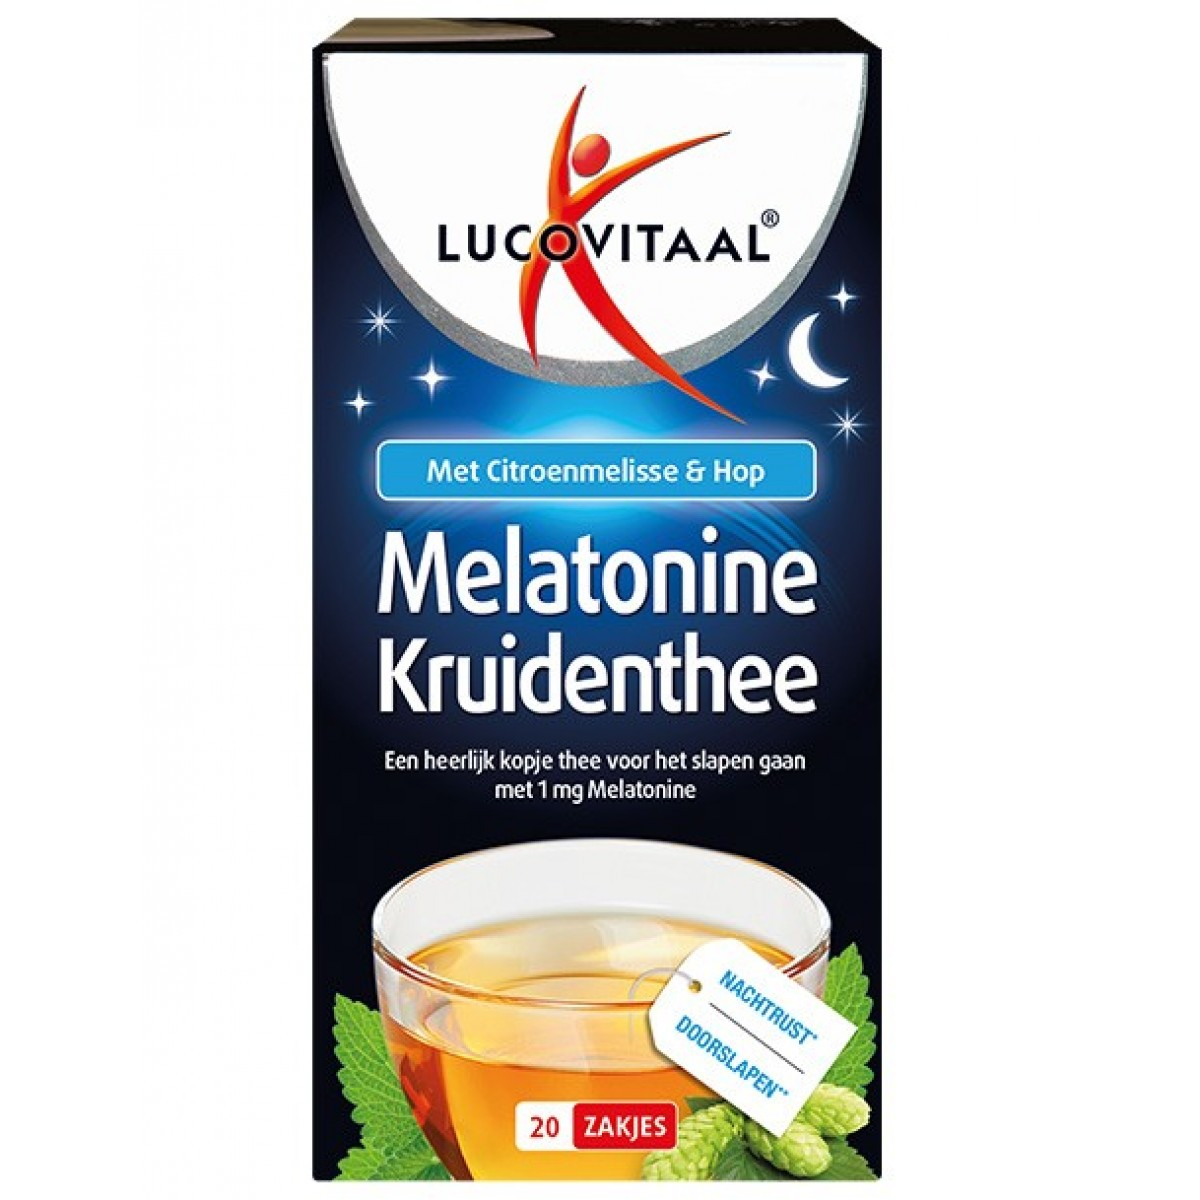 Melatonine Kruidenthee